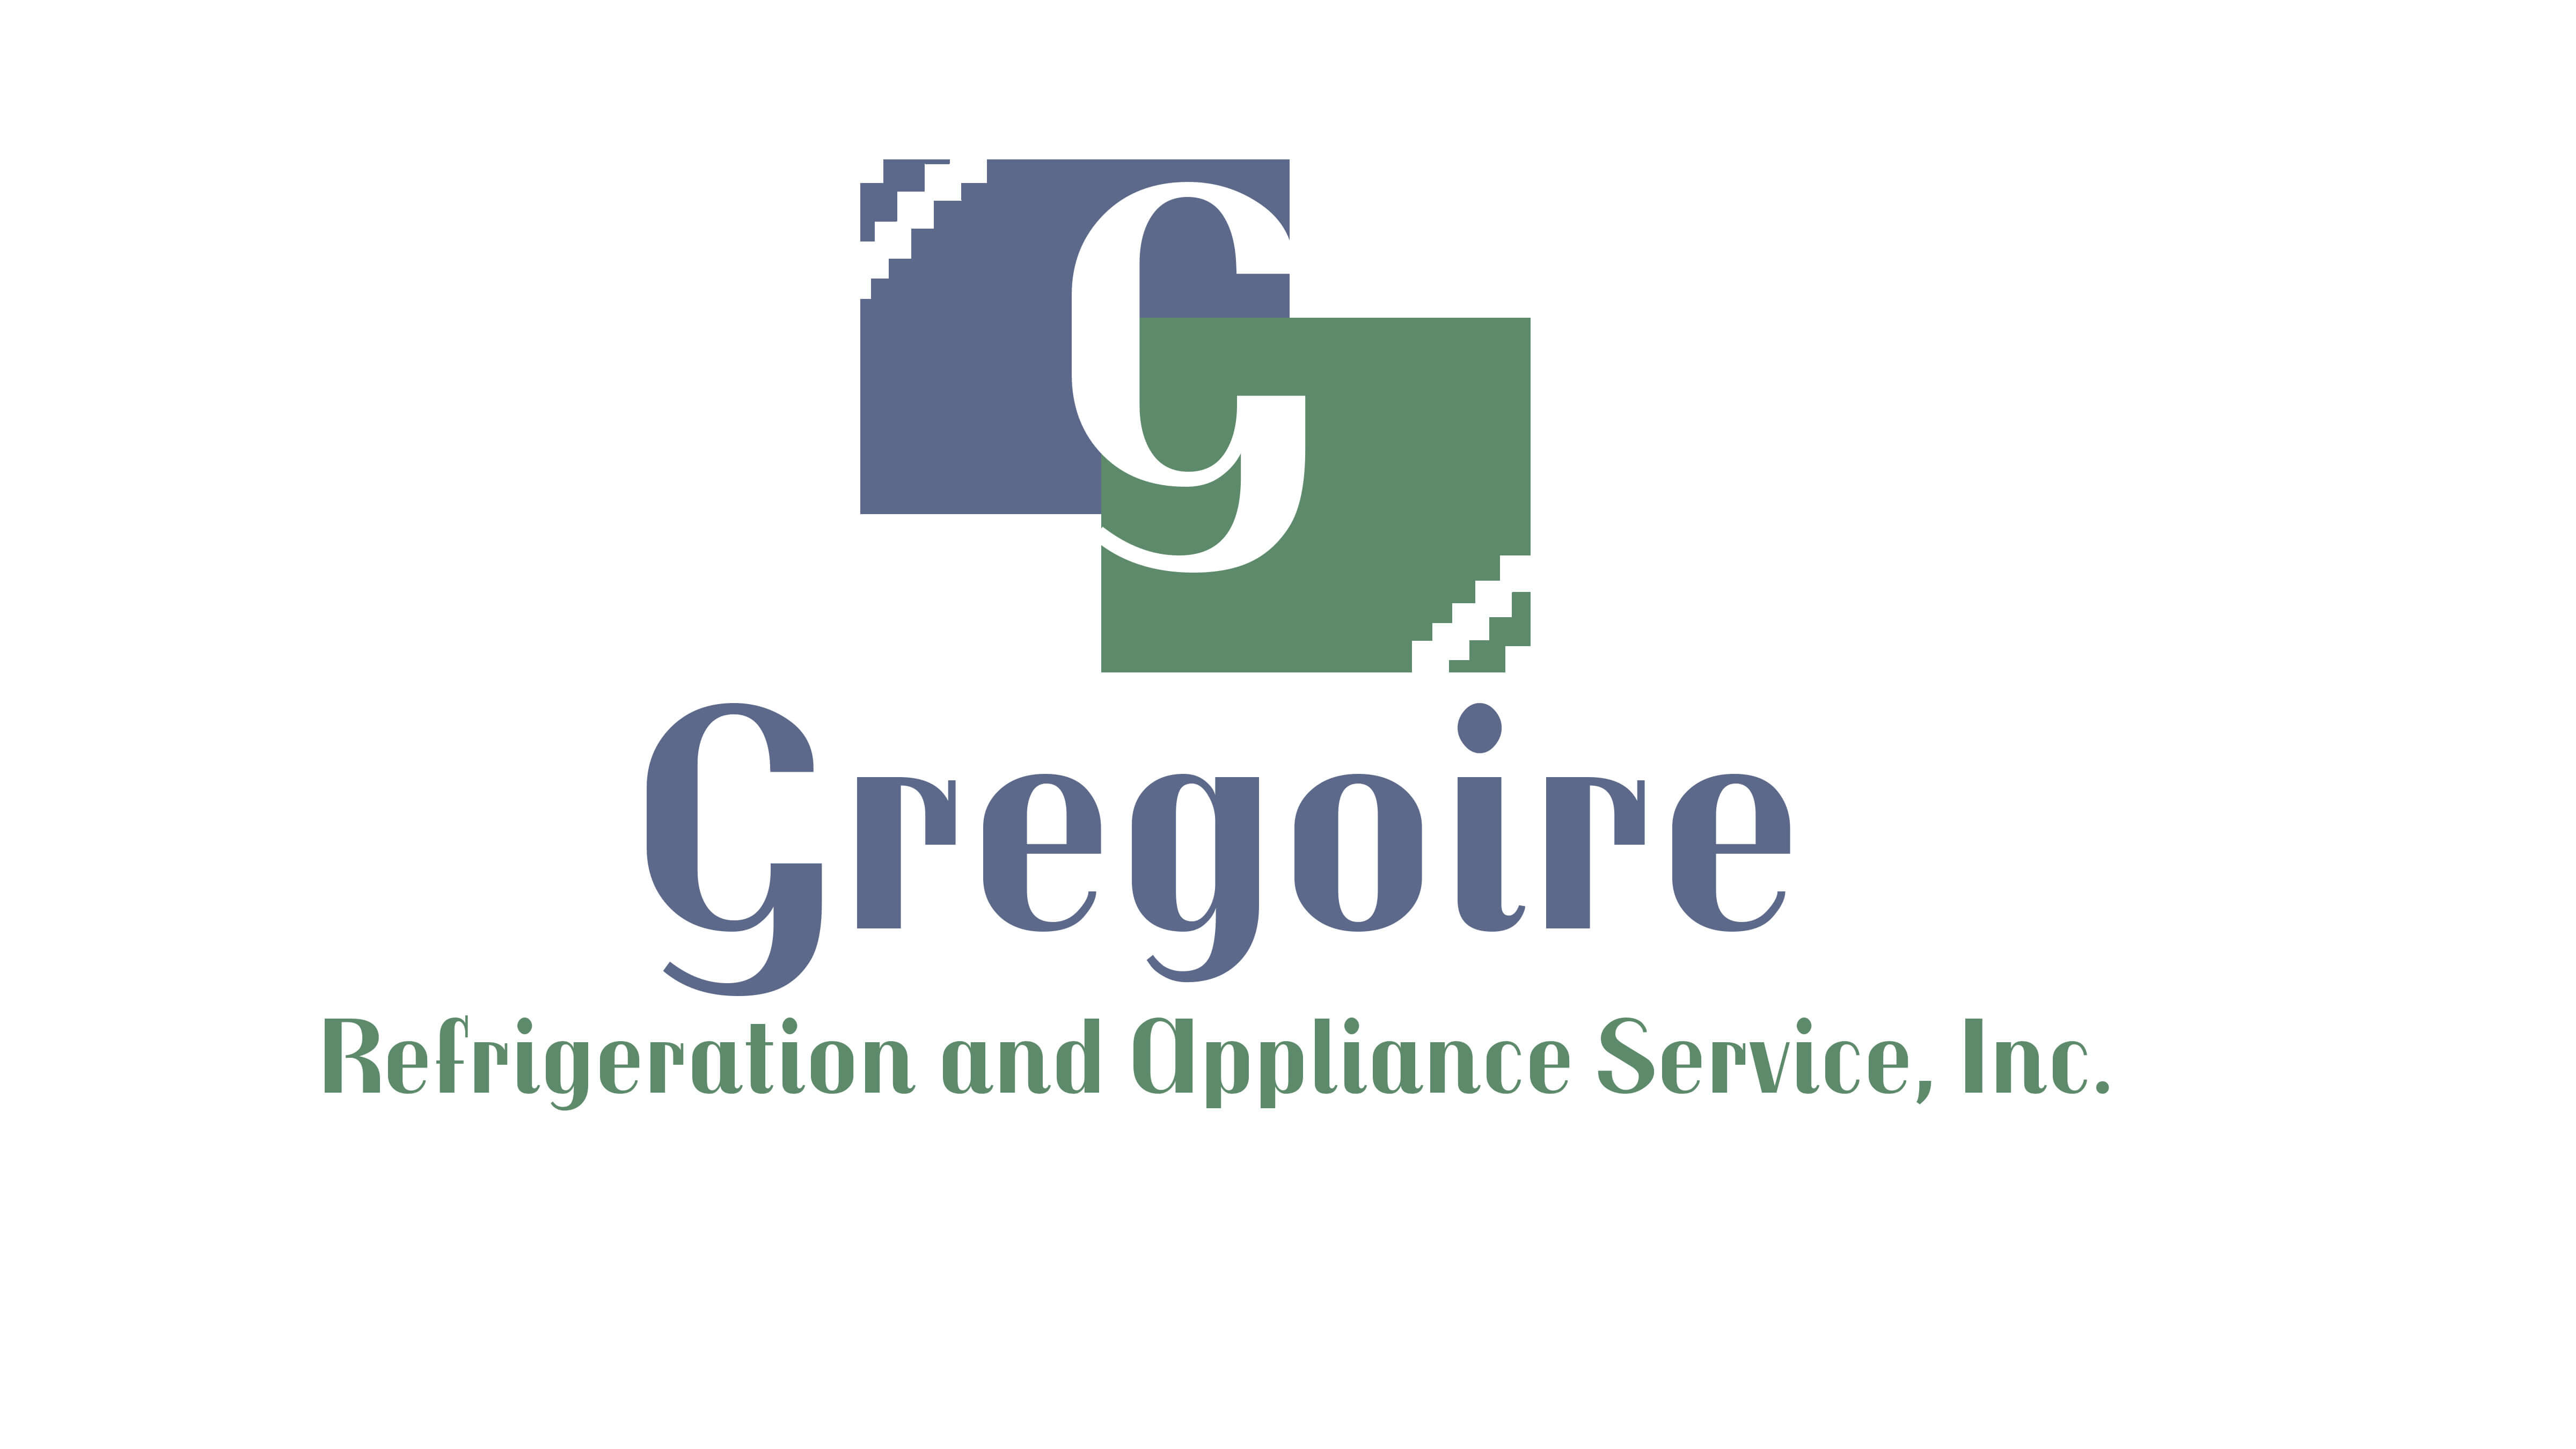 Gregoire Refrigeration and Appliance Service, Inc. logo